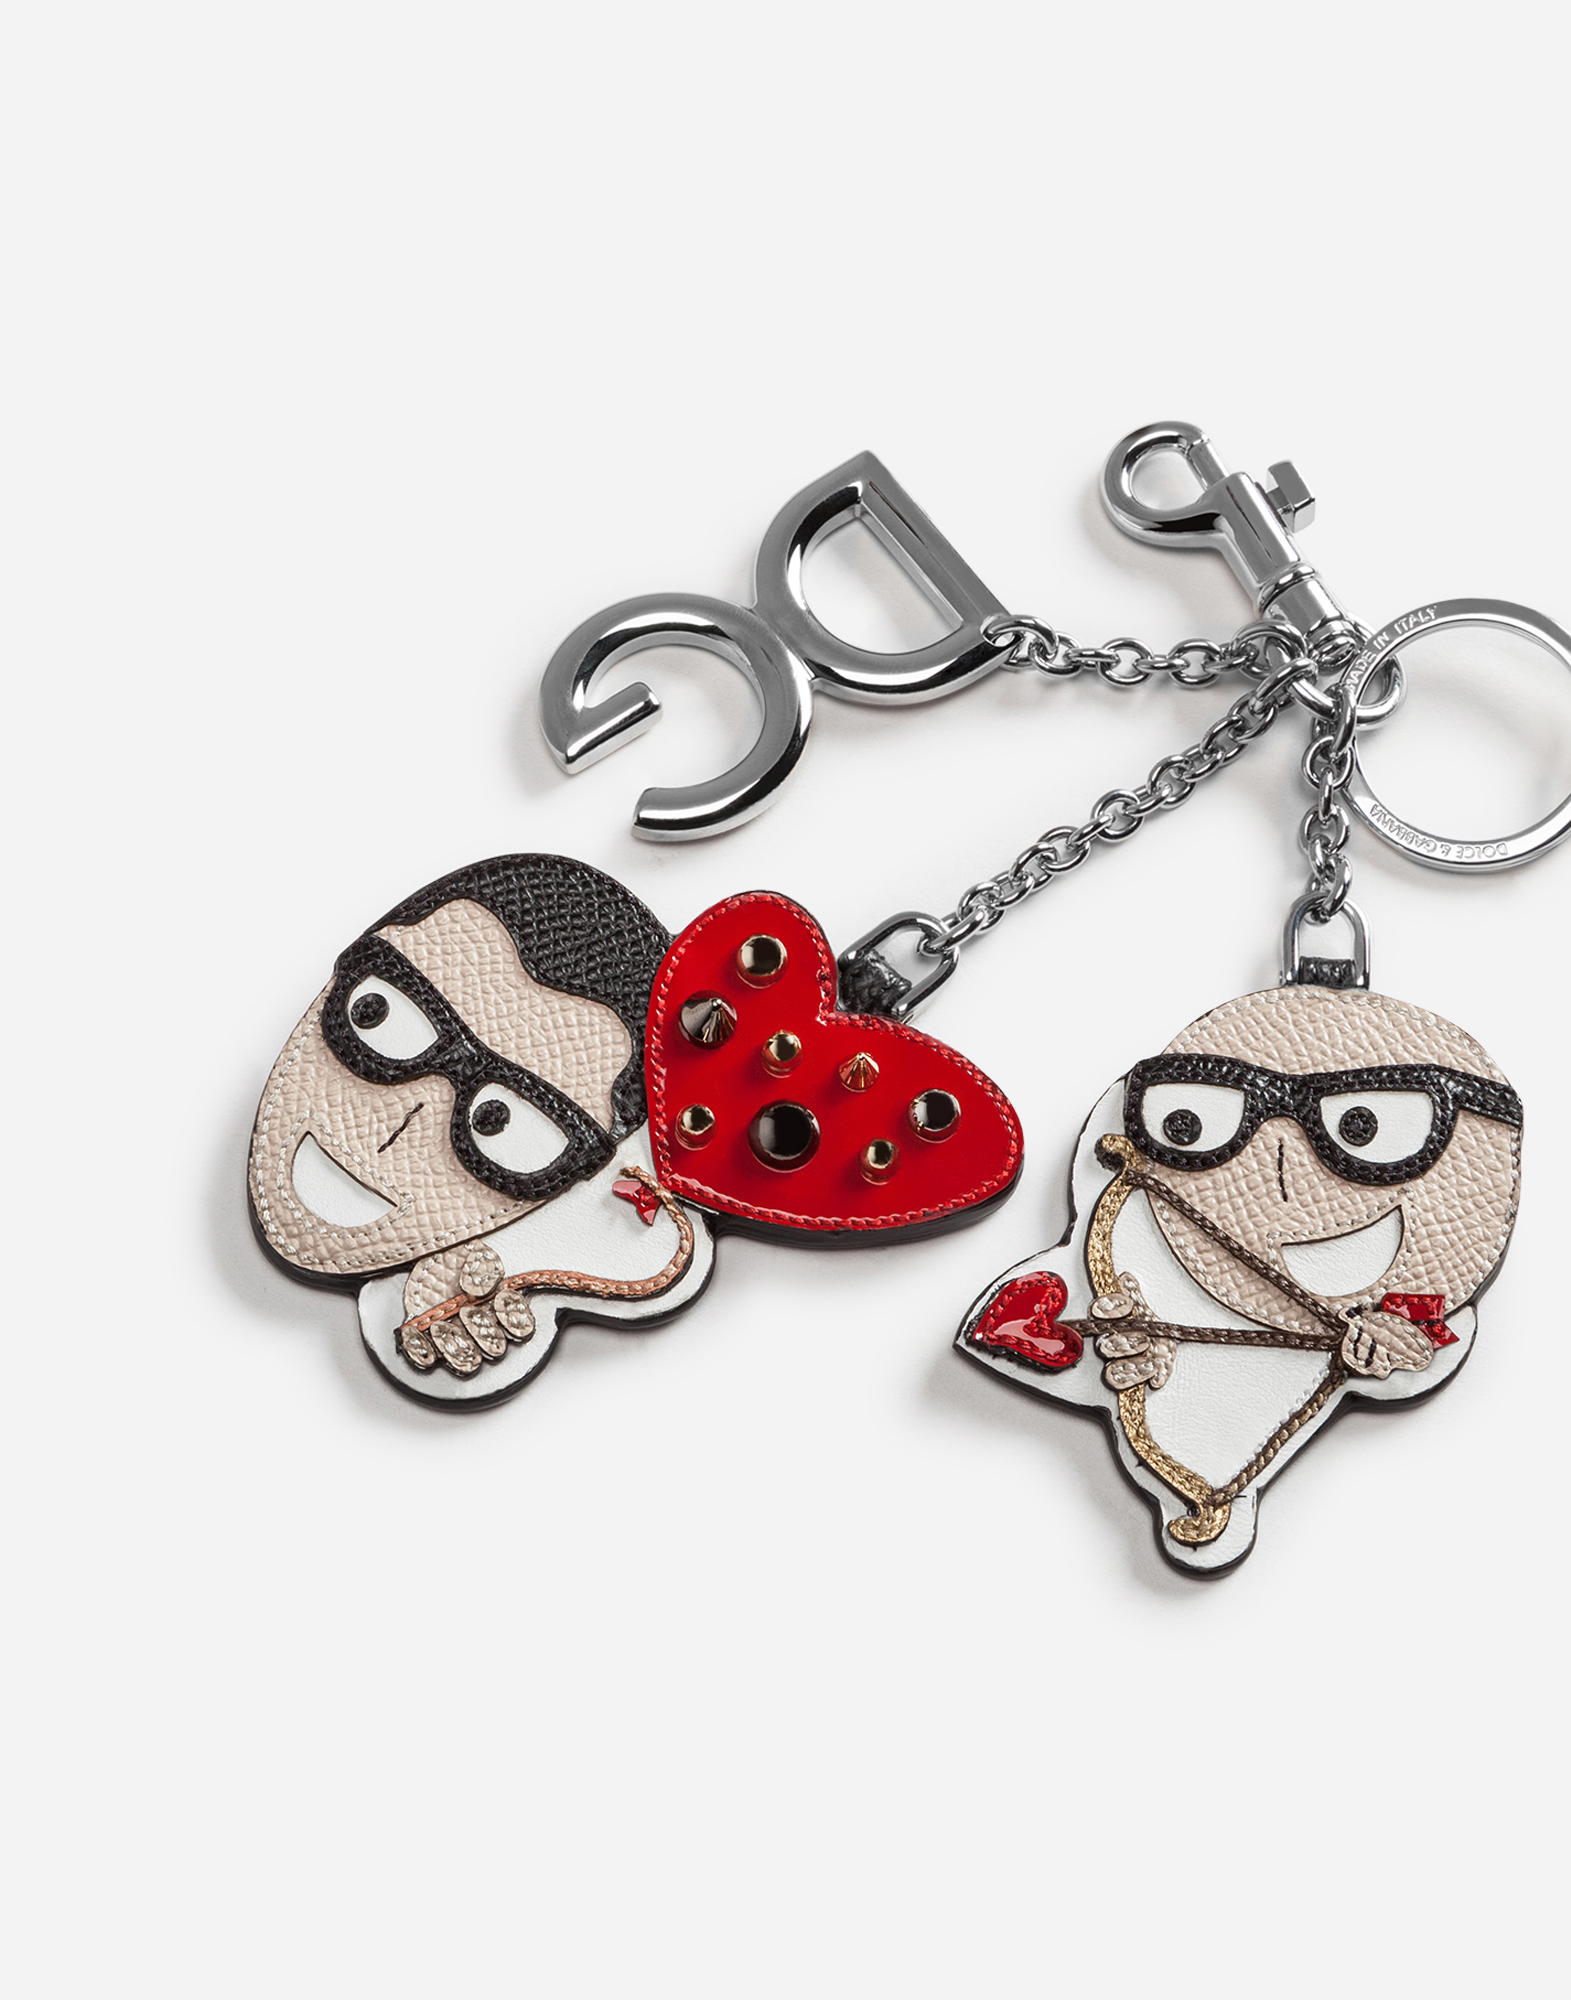 DAUPHINE CALFSKIN KEYCHAIN WITH CUPID-STYLE PATCHES OF THE DESIGNERS